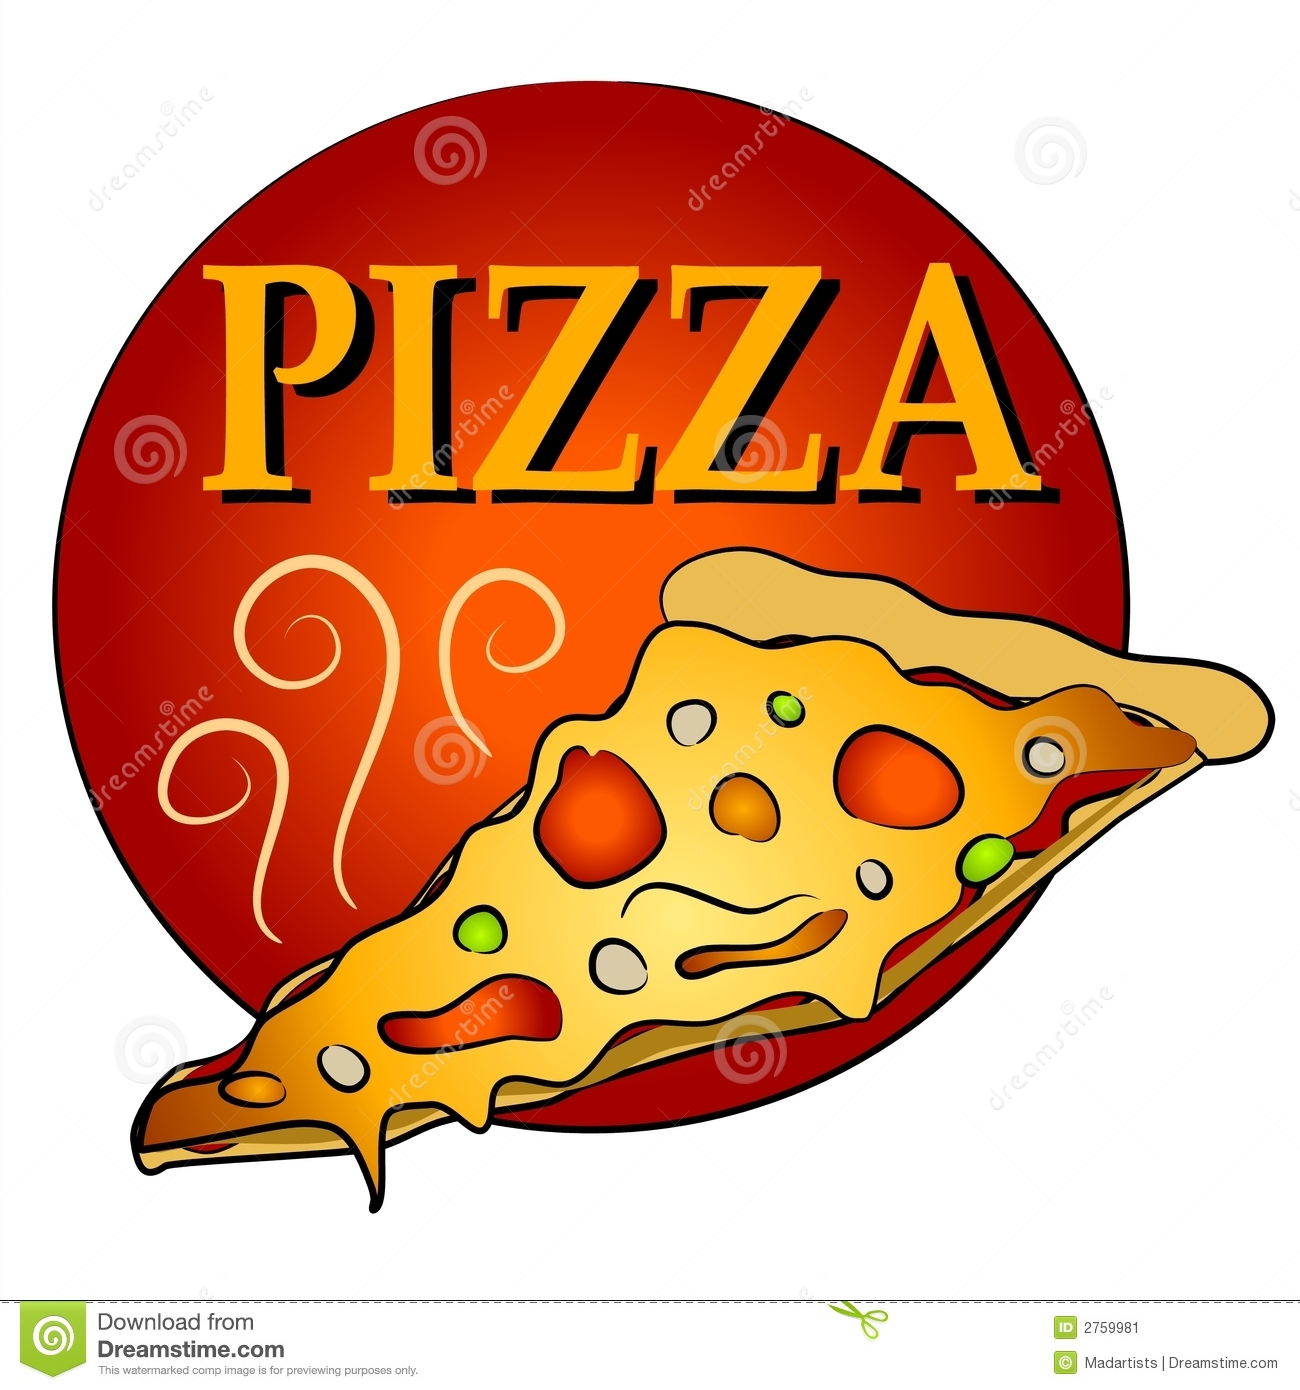 Rebanada de pizza caliente Clipart